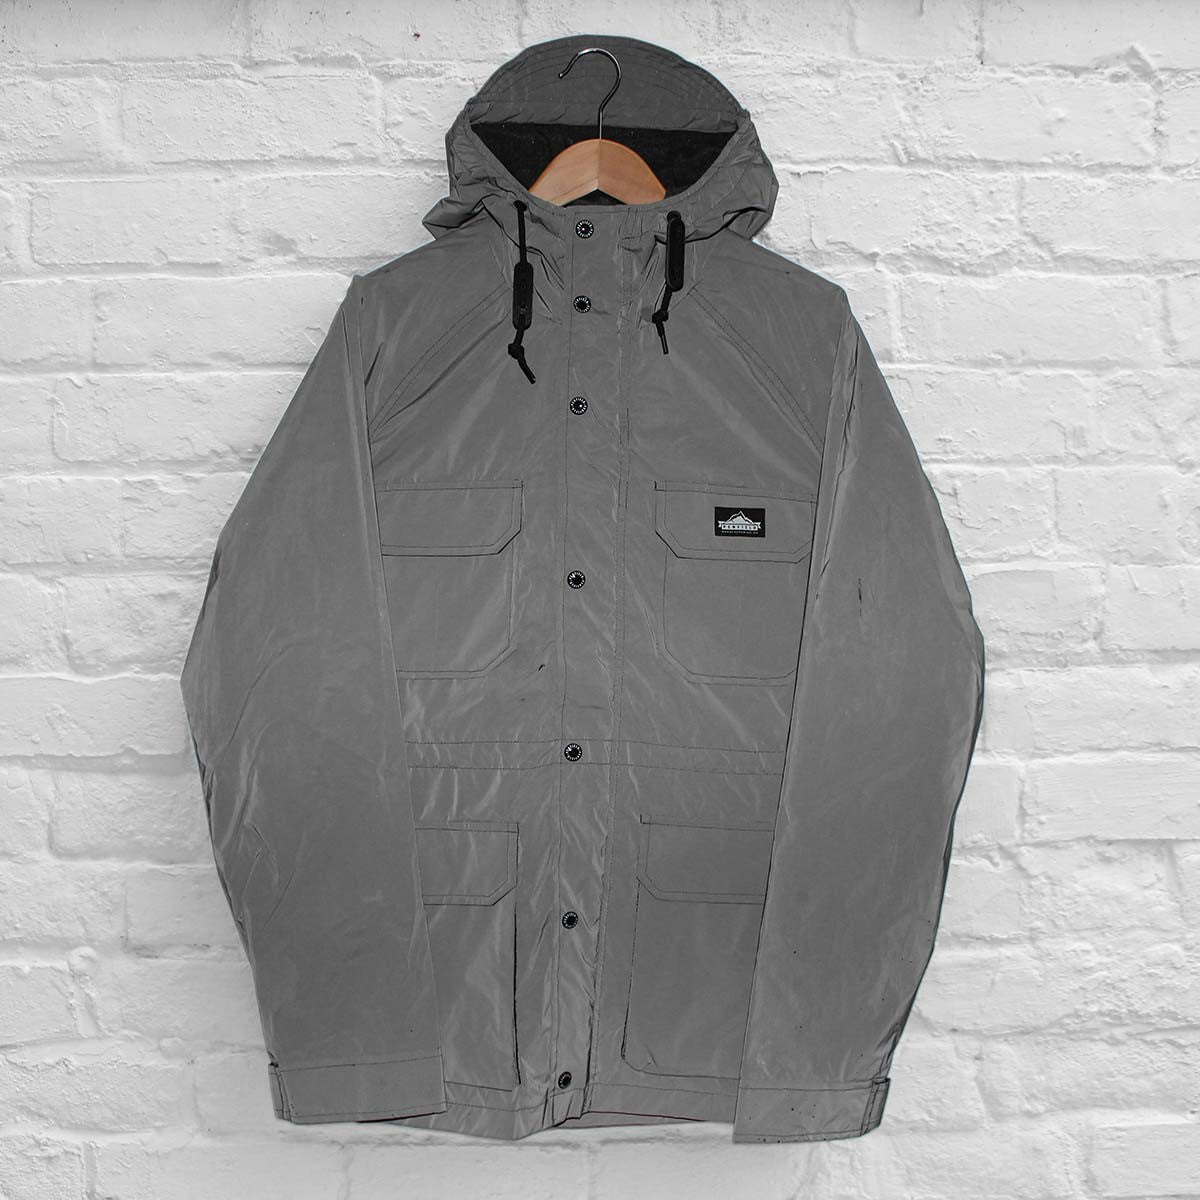 Penfield Kasson Reflective Jacket